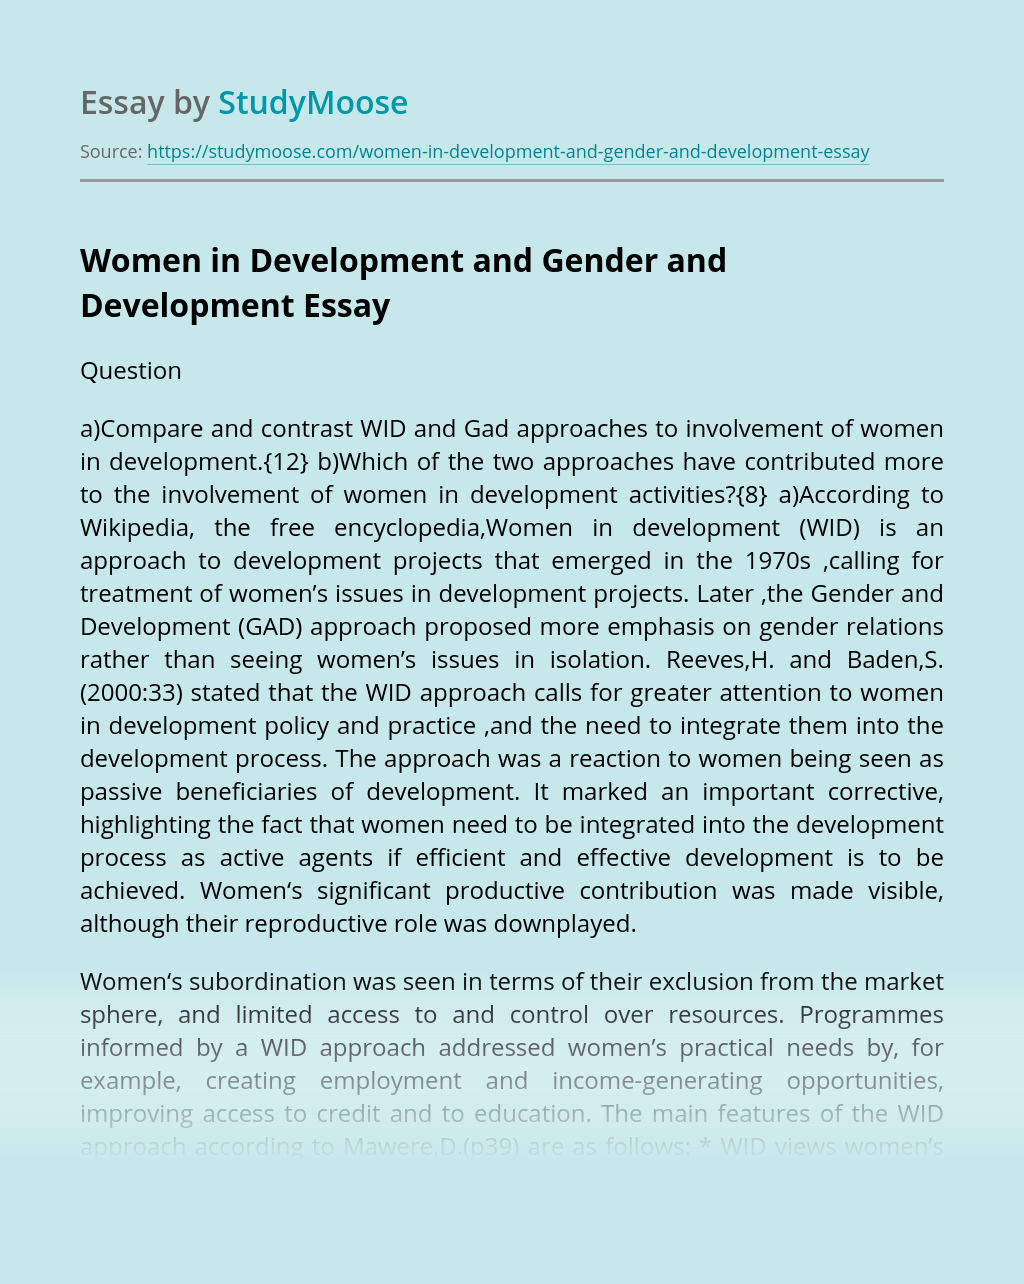 Women in Development and Gender and Development